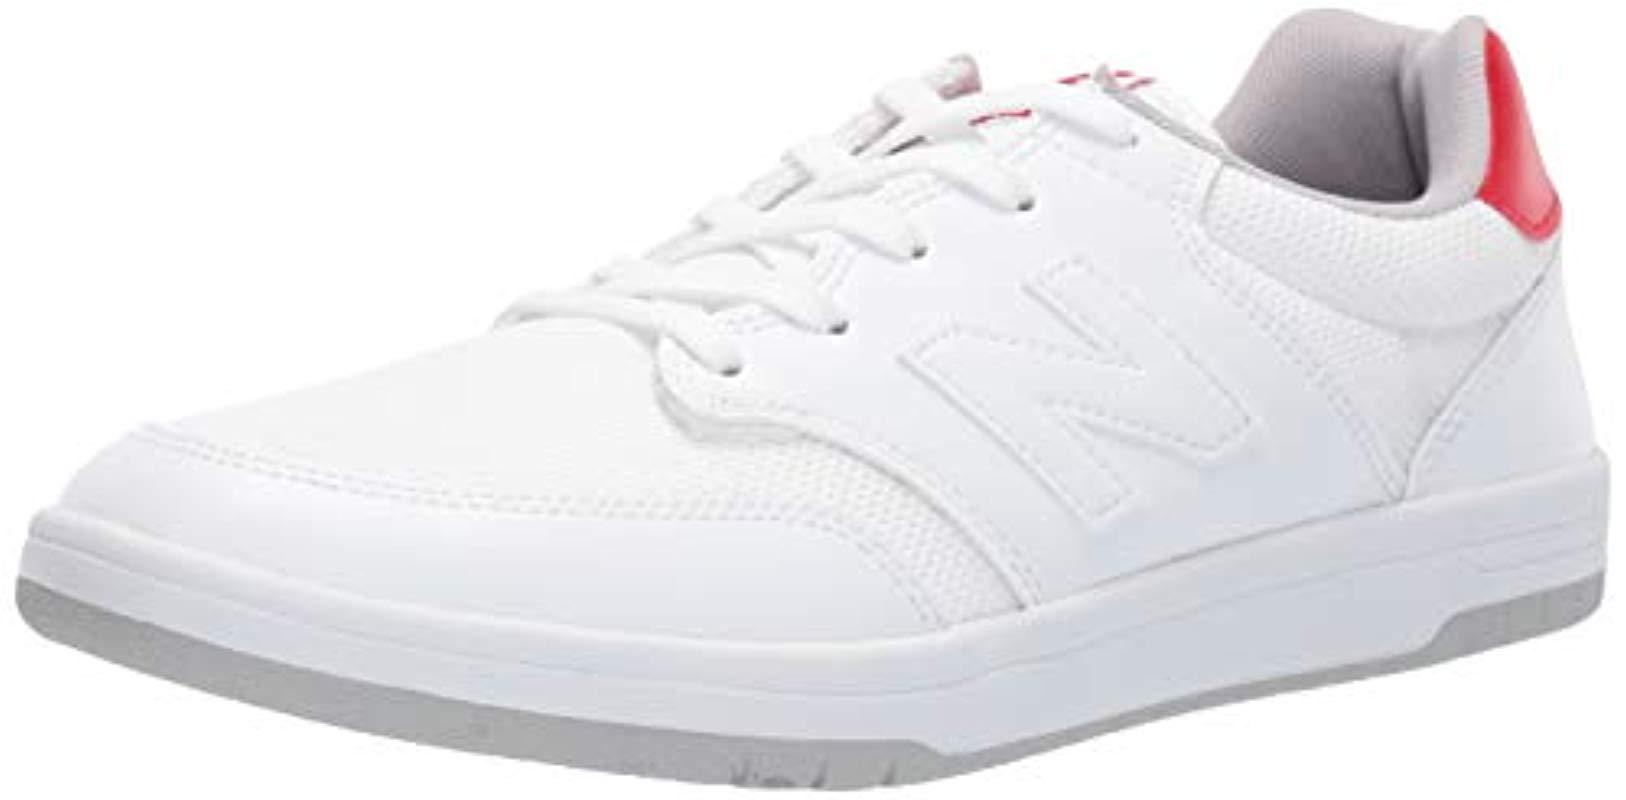 Untado Cabecear Hacer las tareas domésticas  New Balance Am425 Shoes - White/red for Men - Lyst